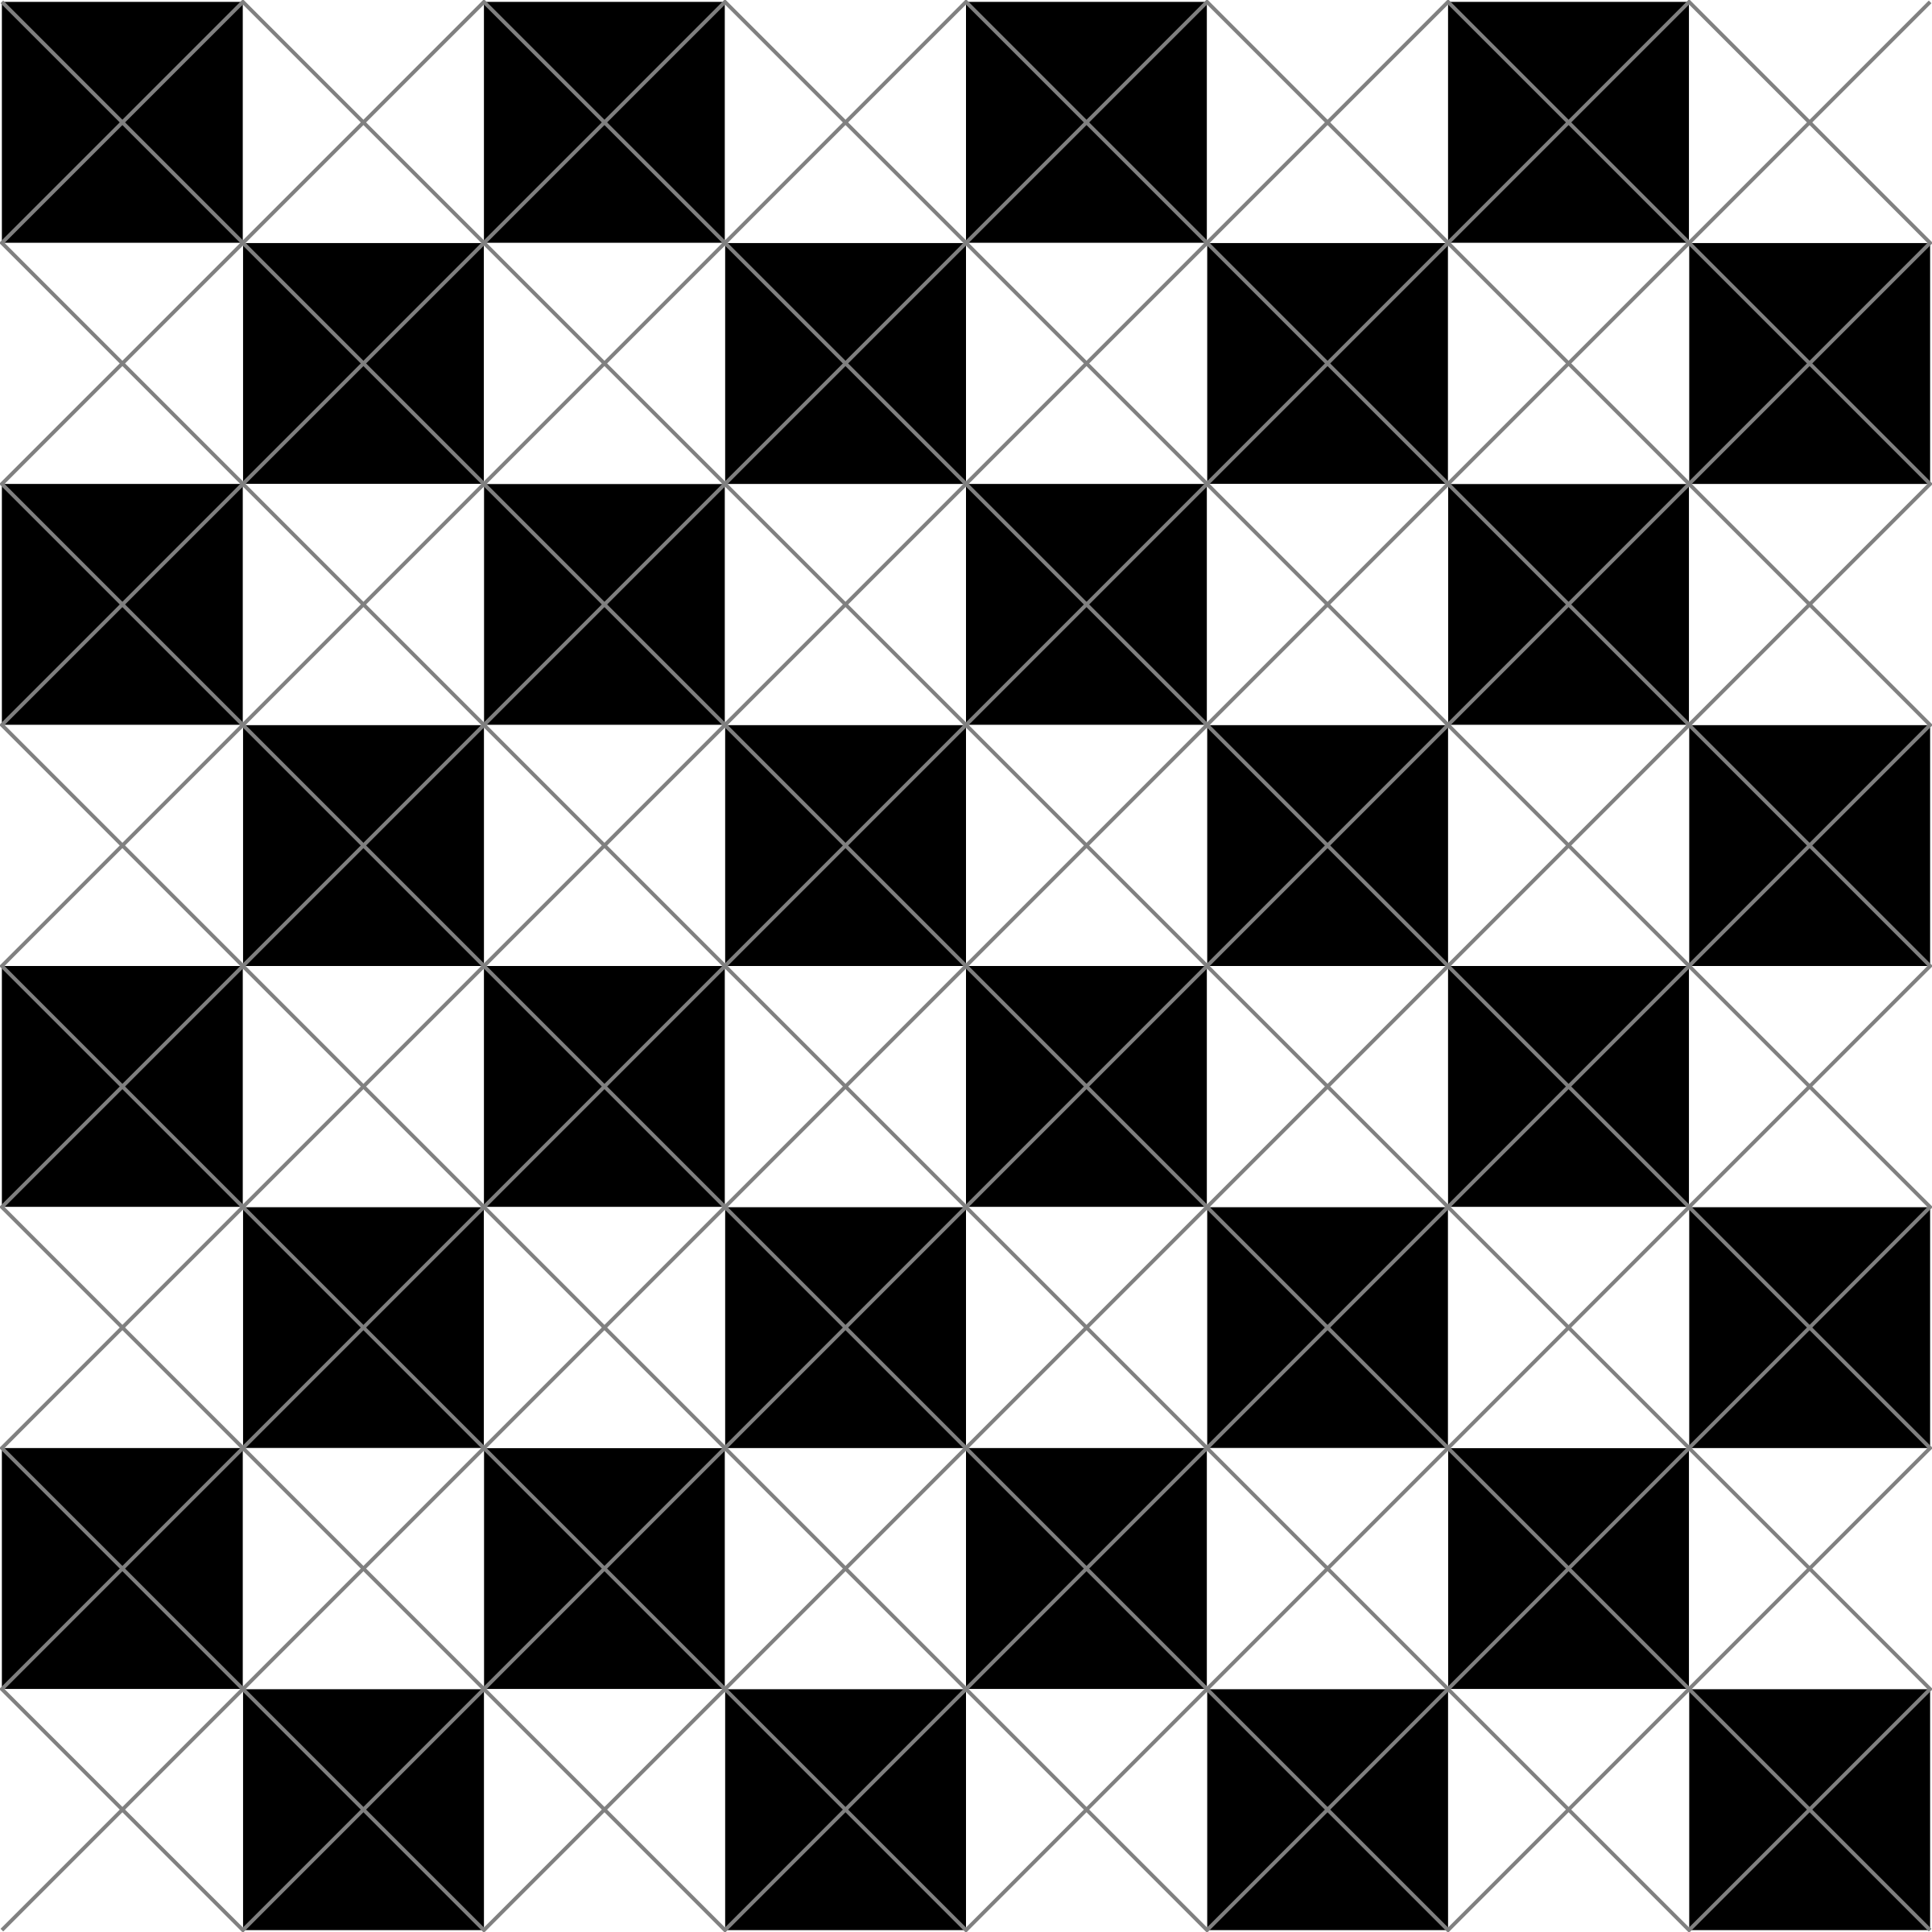 chessboard-diagonal-cuts by 10binary